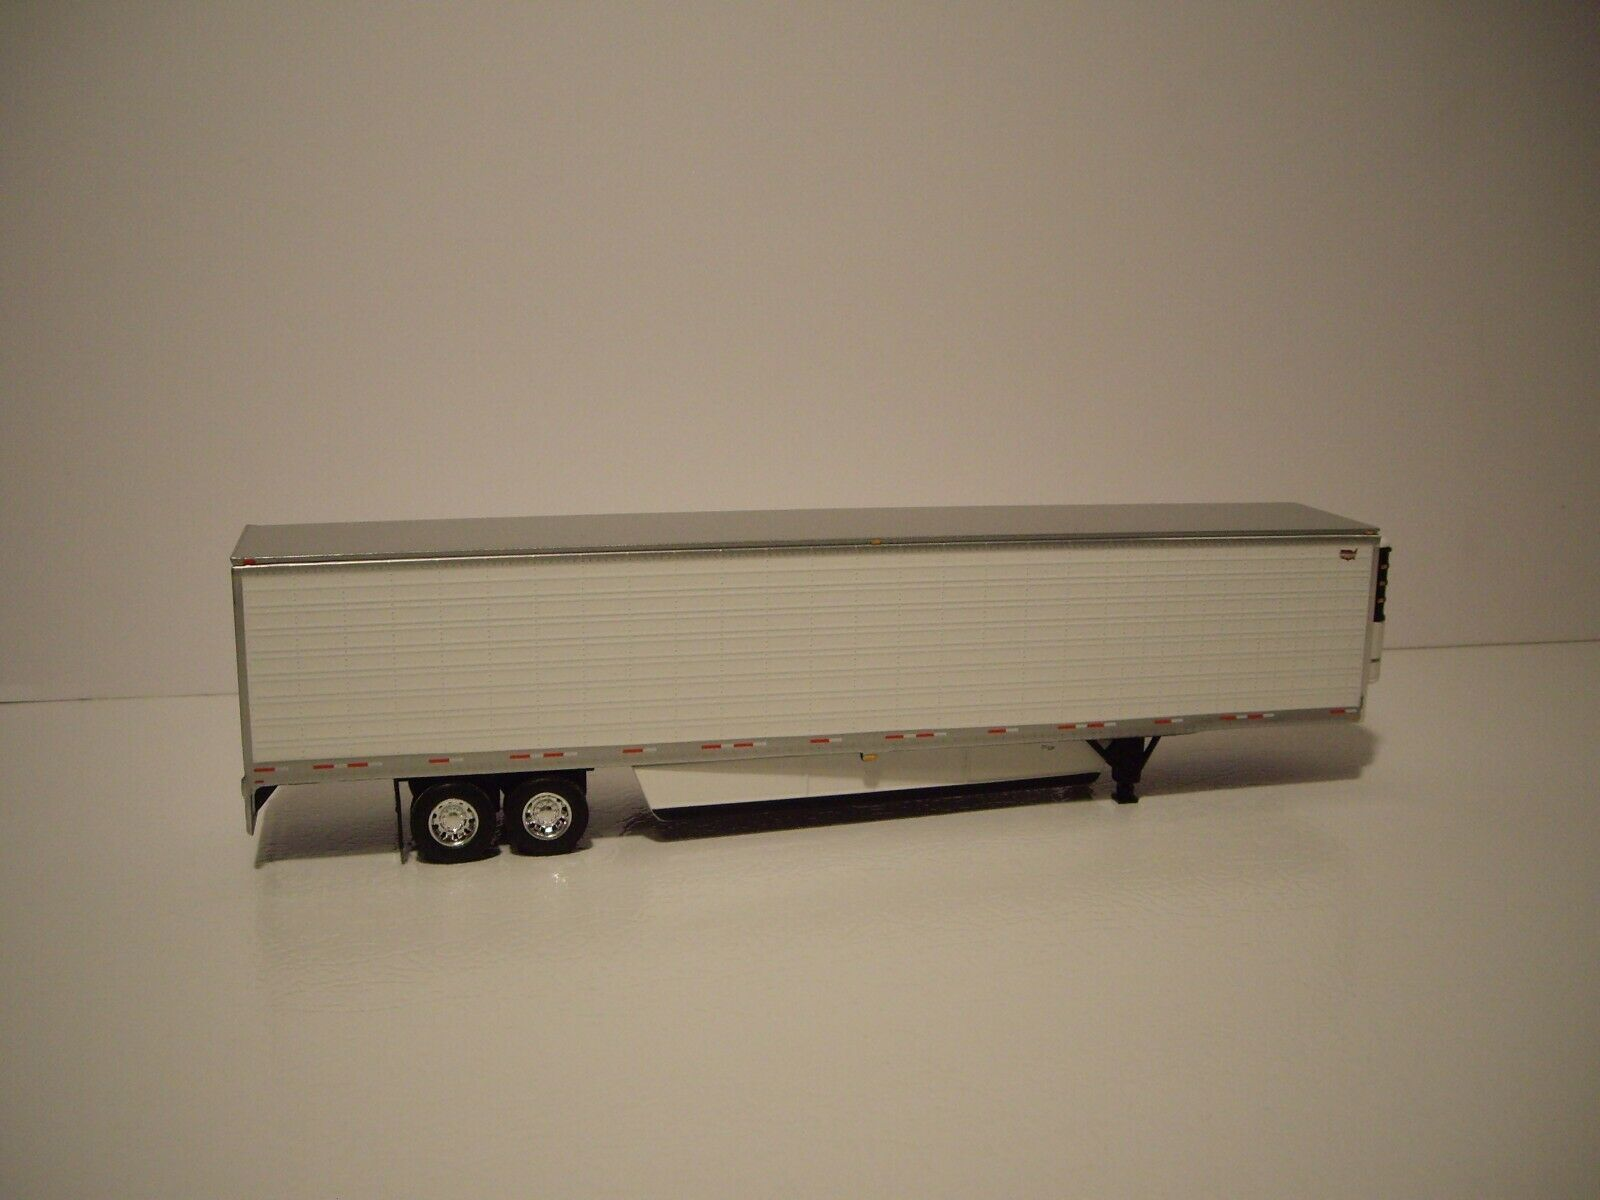 DCP FIRST GEAR 1/64 53' WABASH WHITE ARCTICLITE TANDEM AXLE REEFER VAN 4